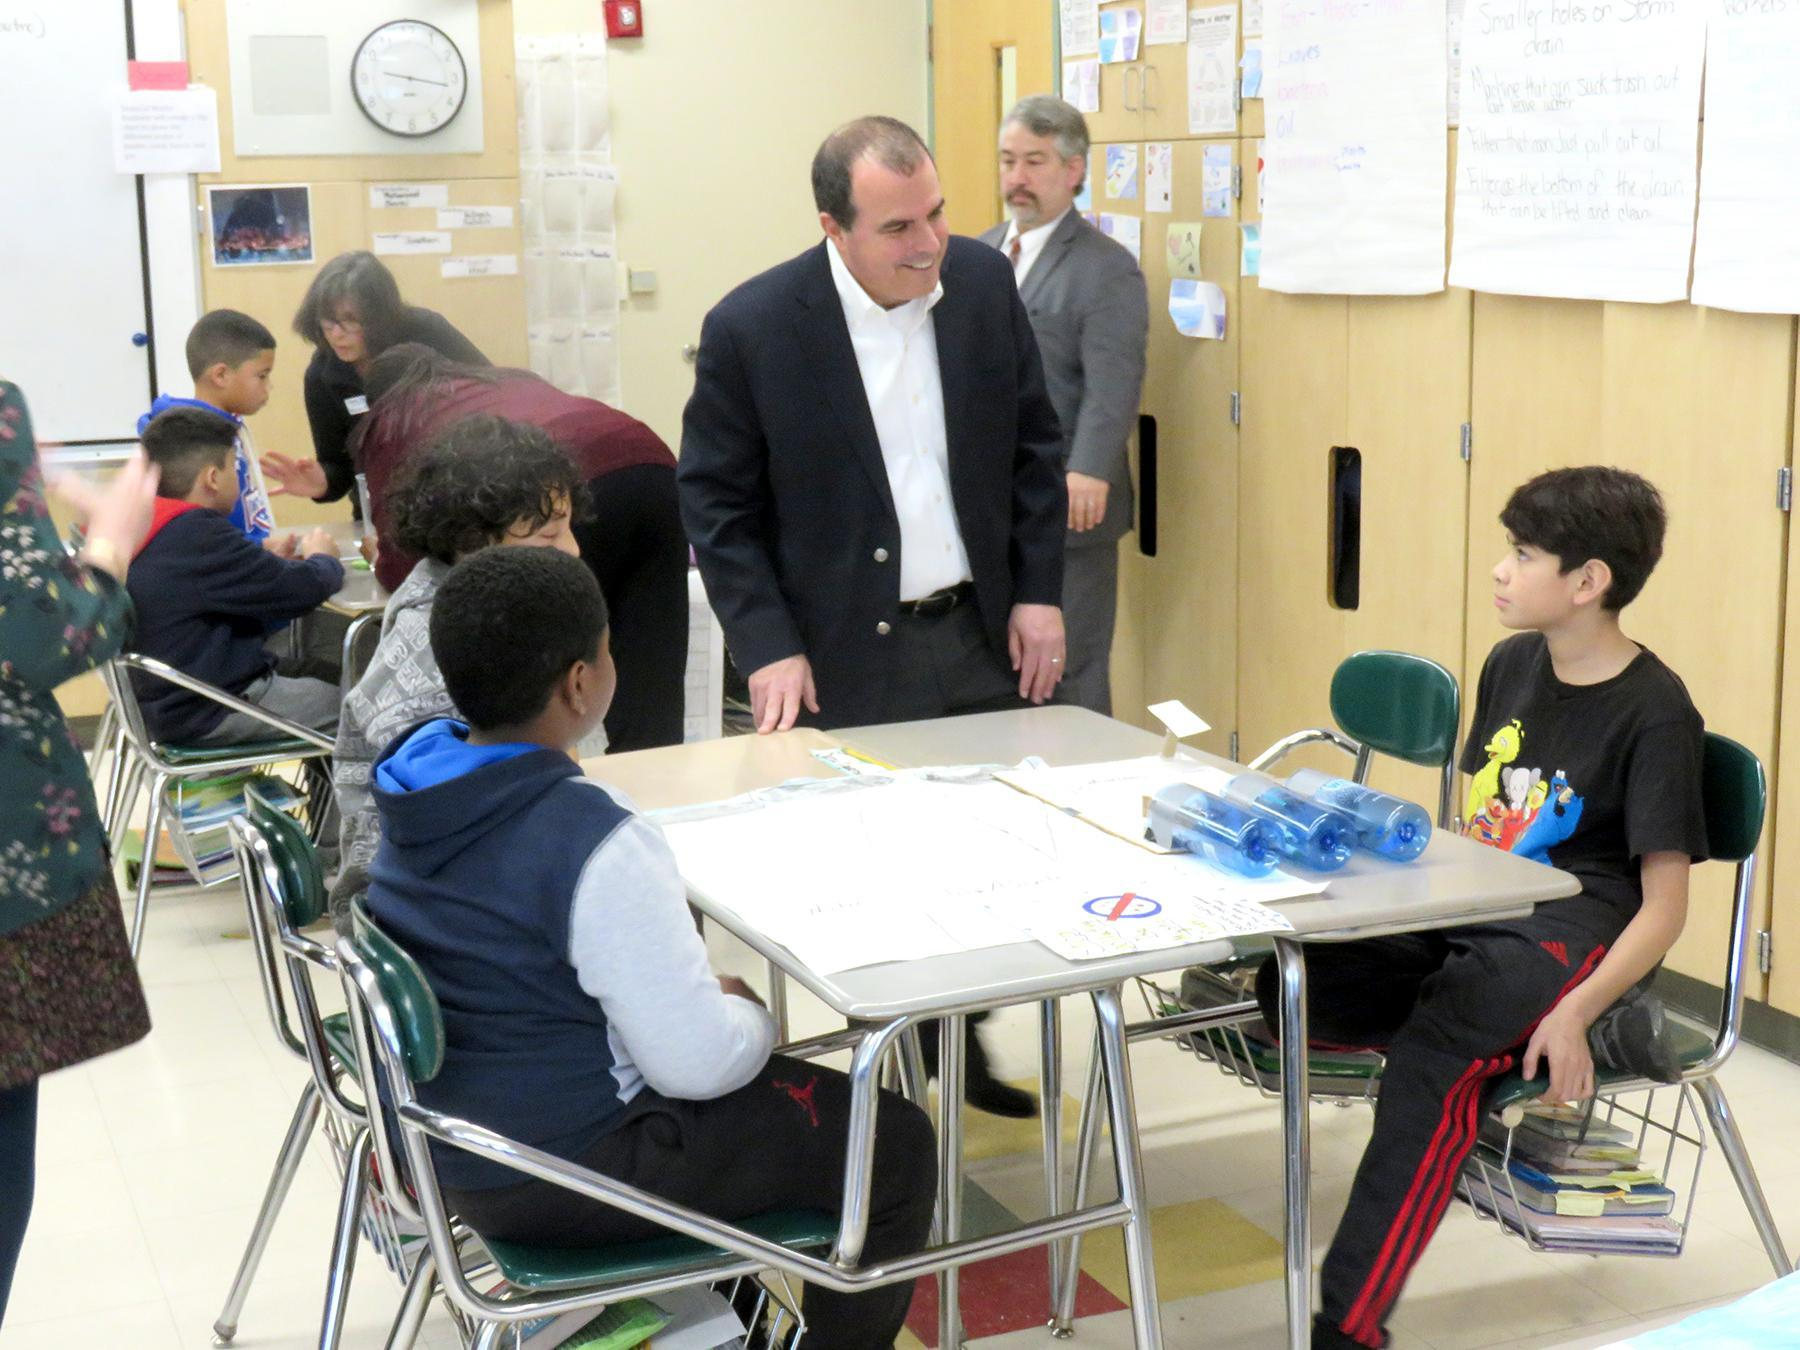 Three students explain their project to a classroom visitor